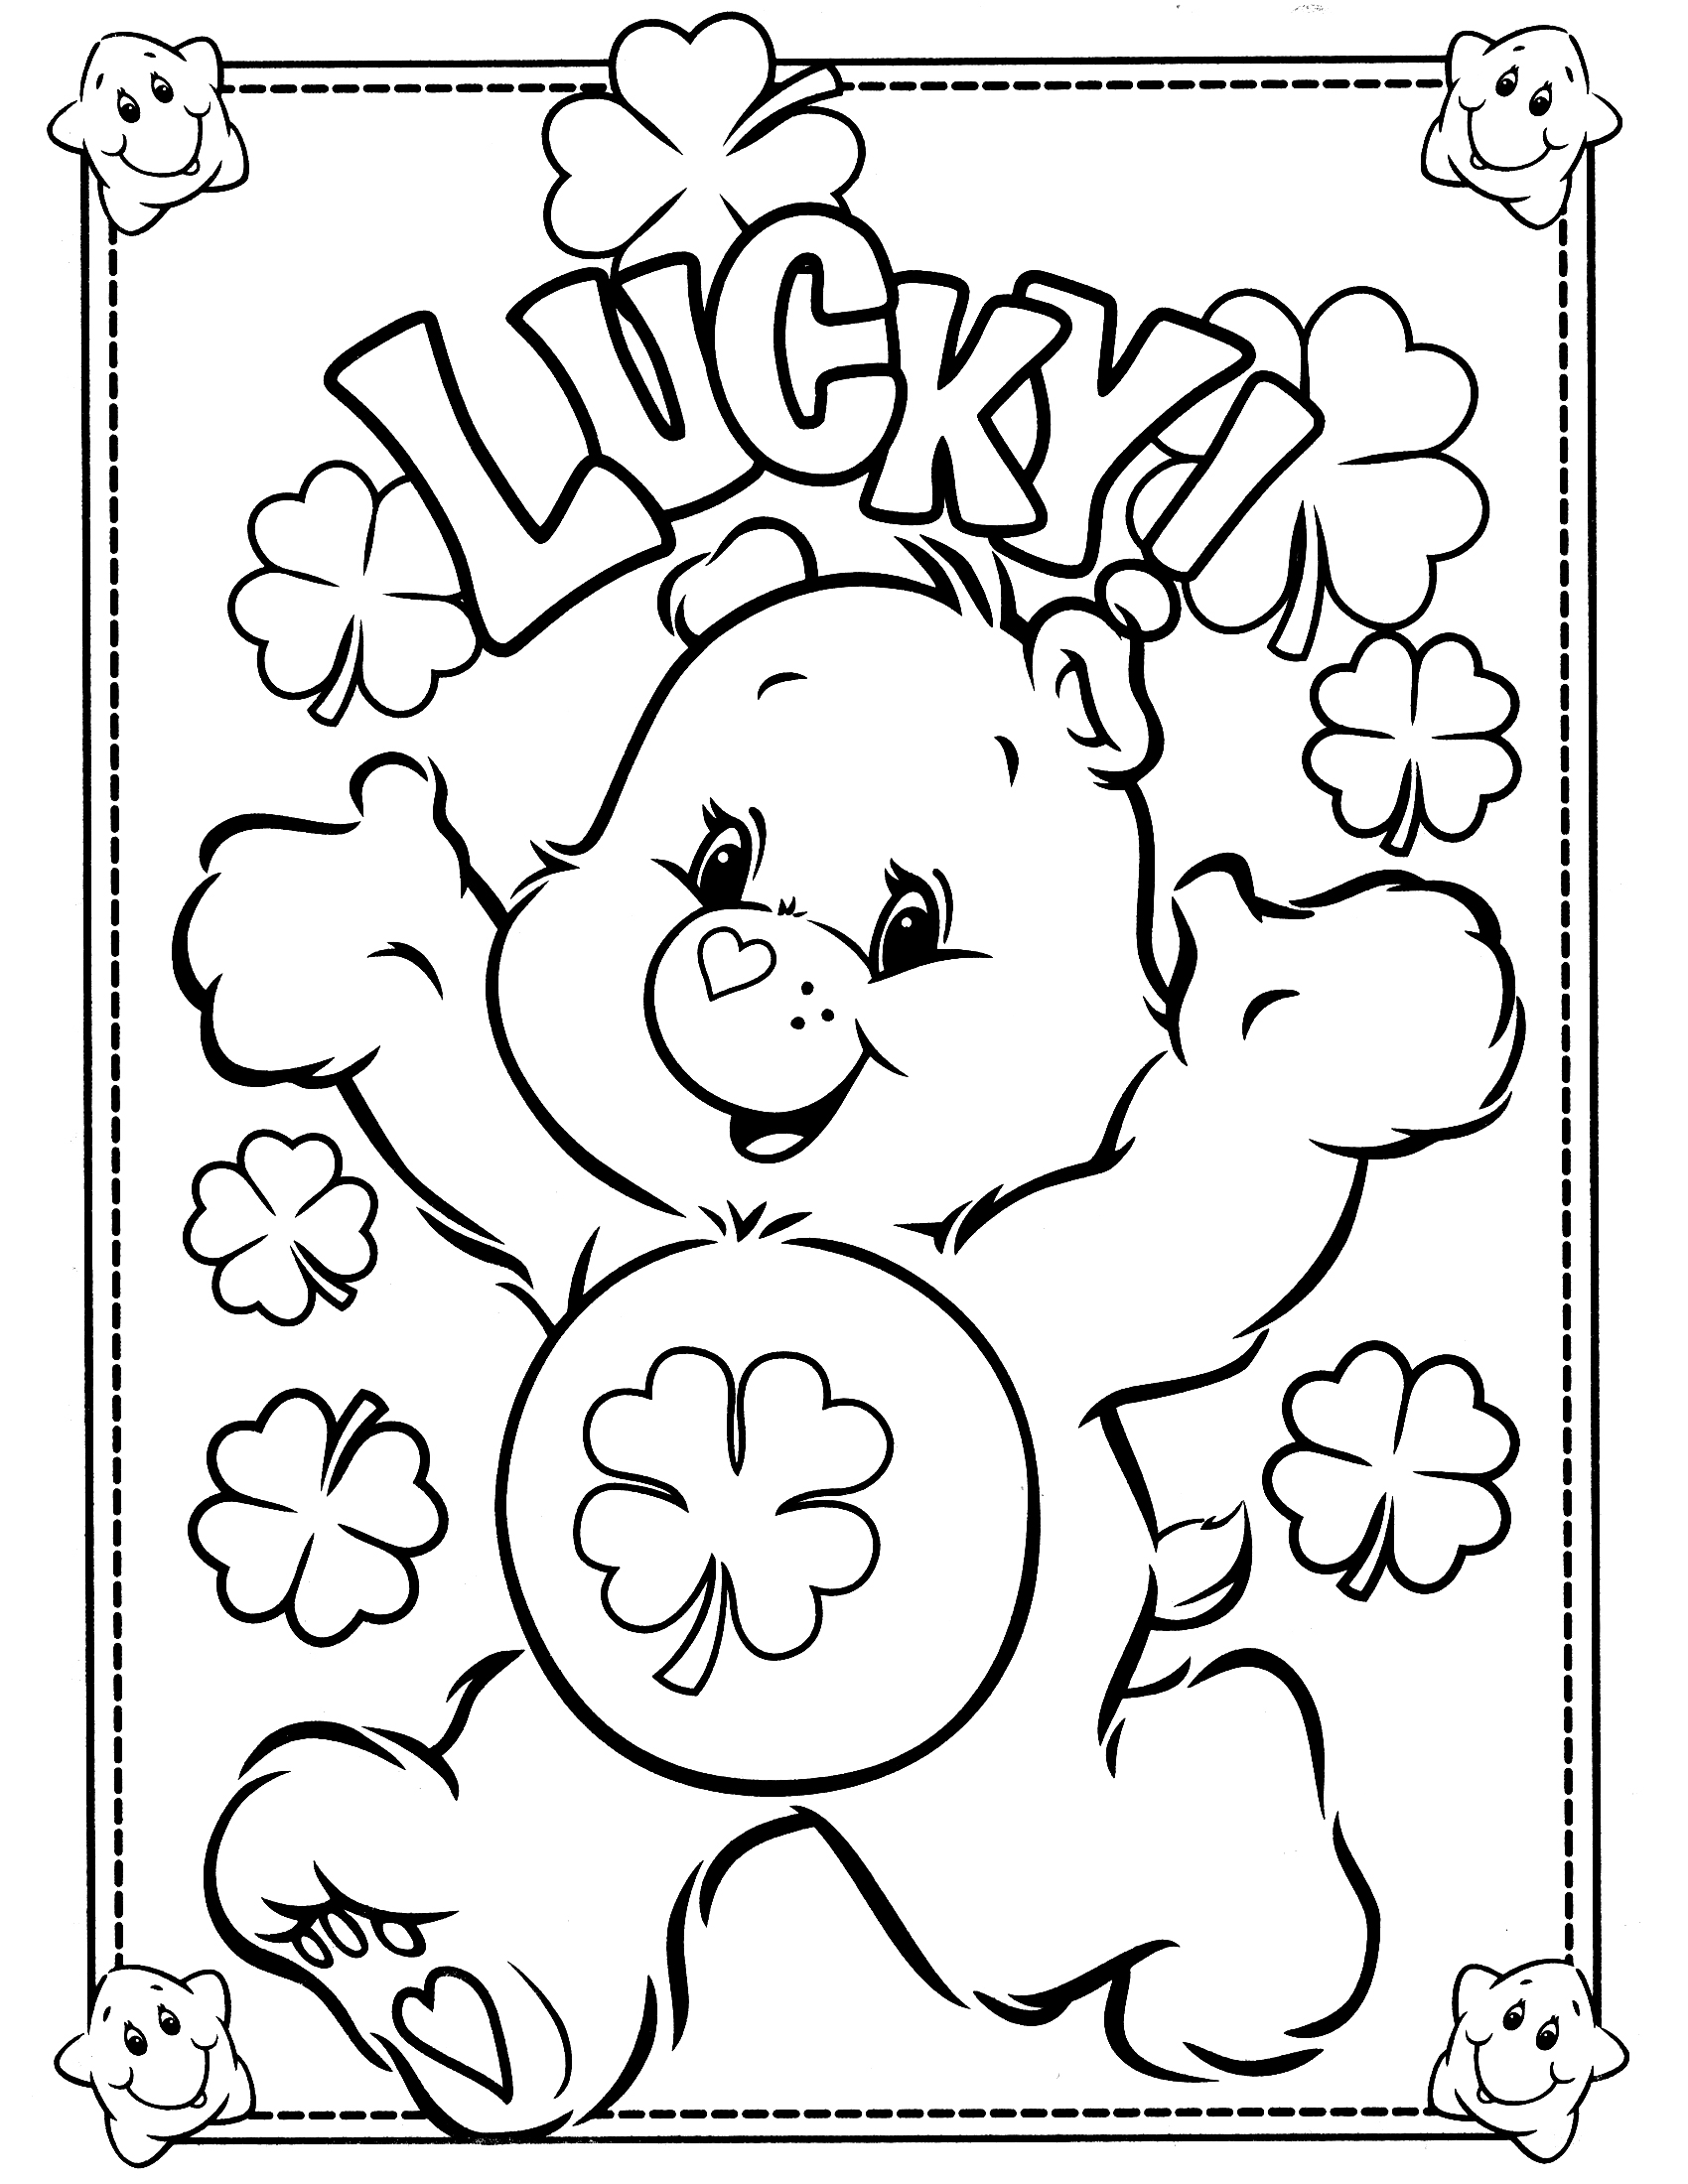 free coloring pages bears free printable care bear coloring pages for kids bears coloring free pages